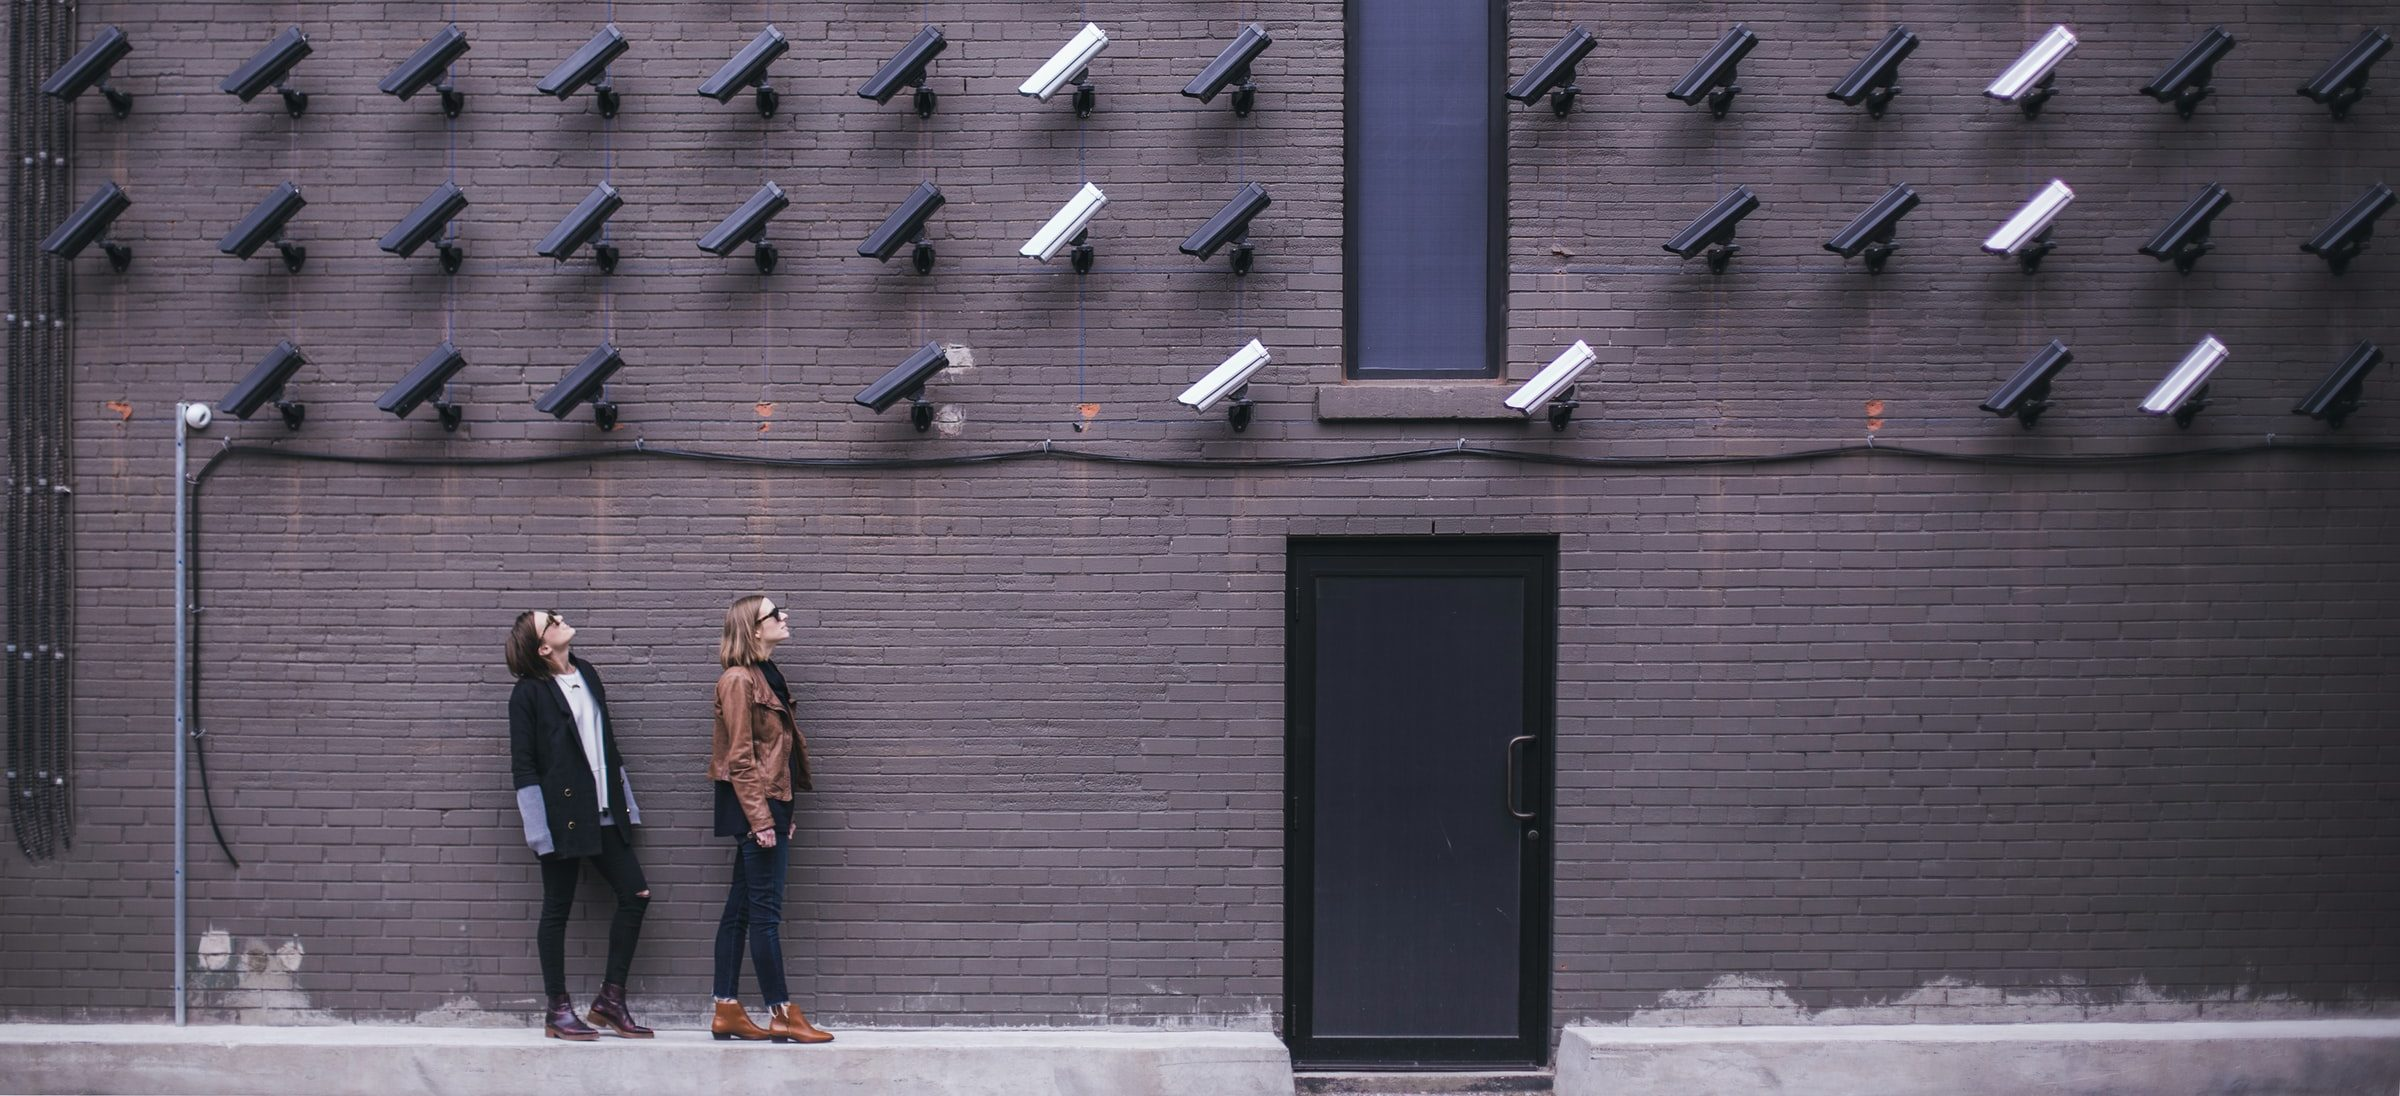 Women looking at a bank of security cameras